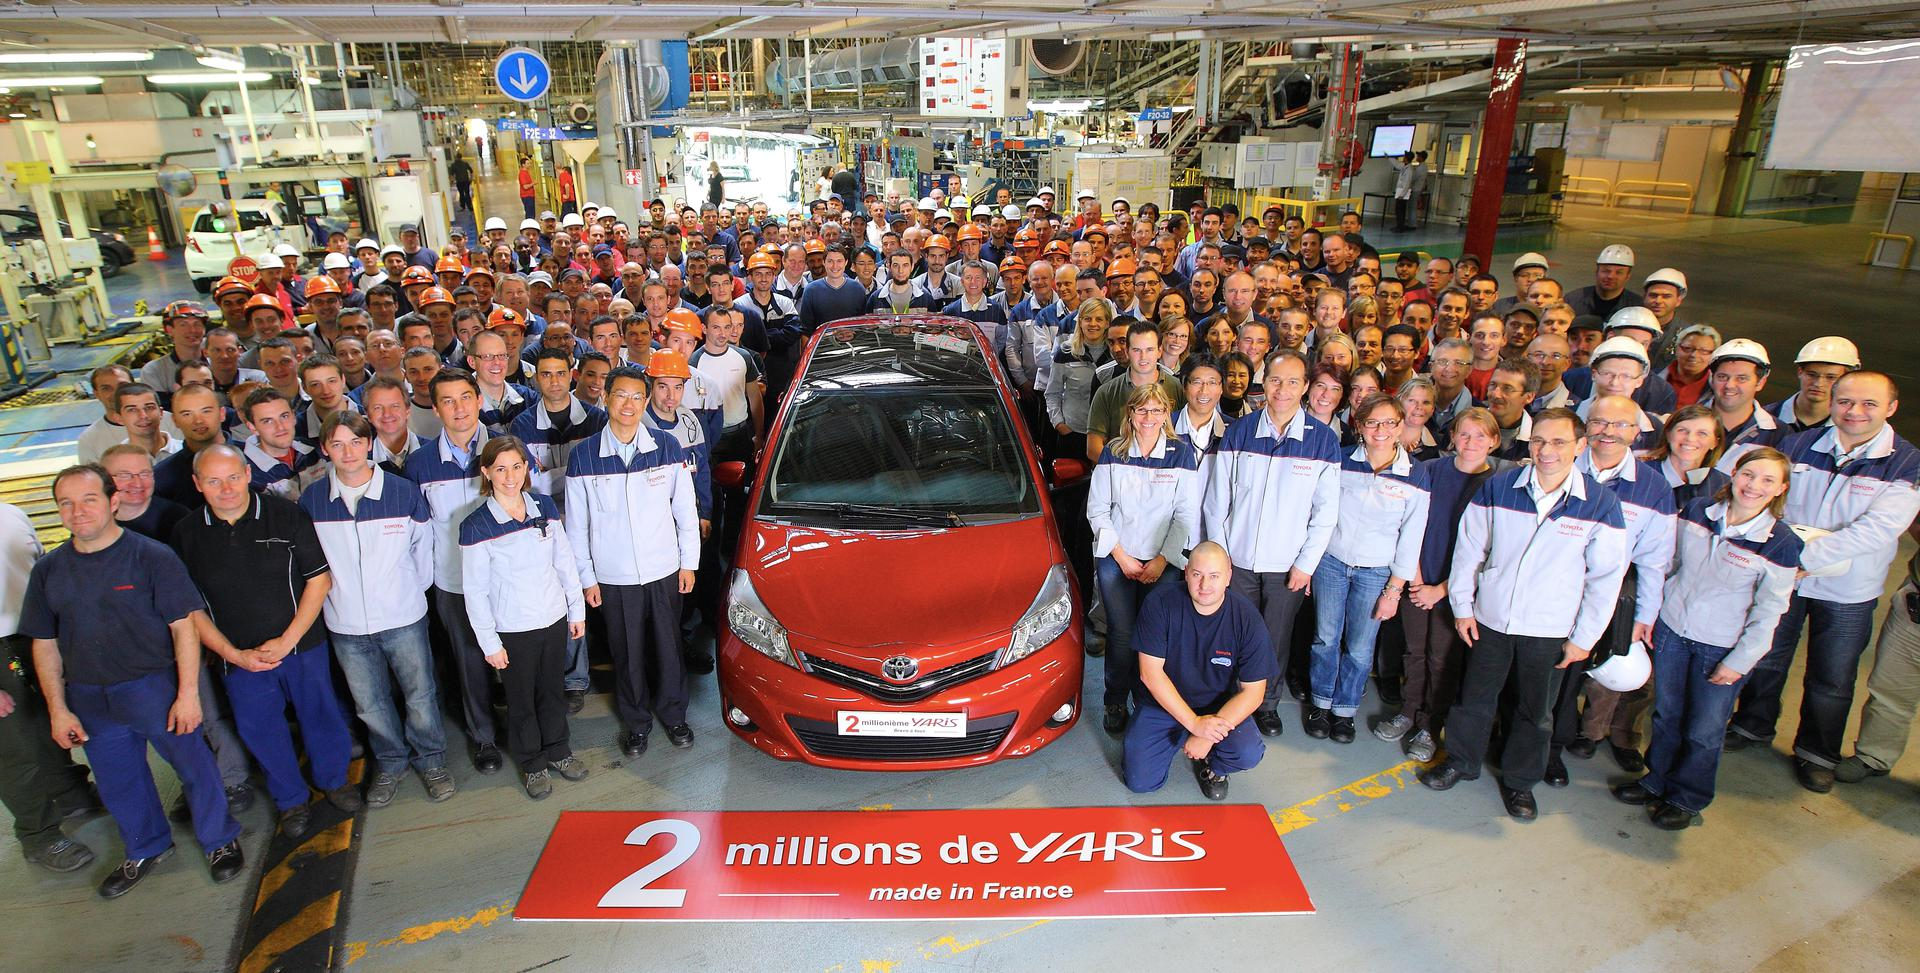 2 Millionth Toyota Yaris Celebrations (credit: Samuel Dhote)